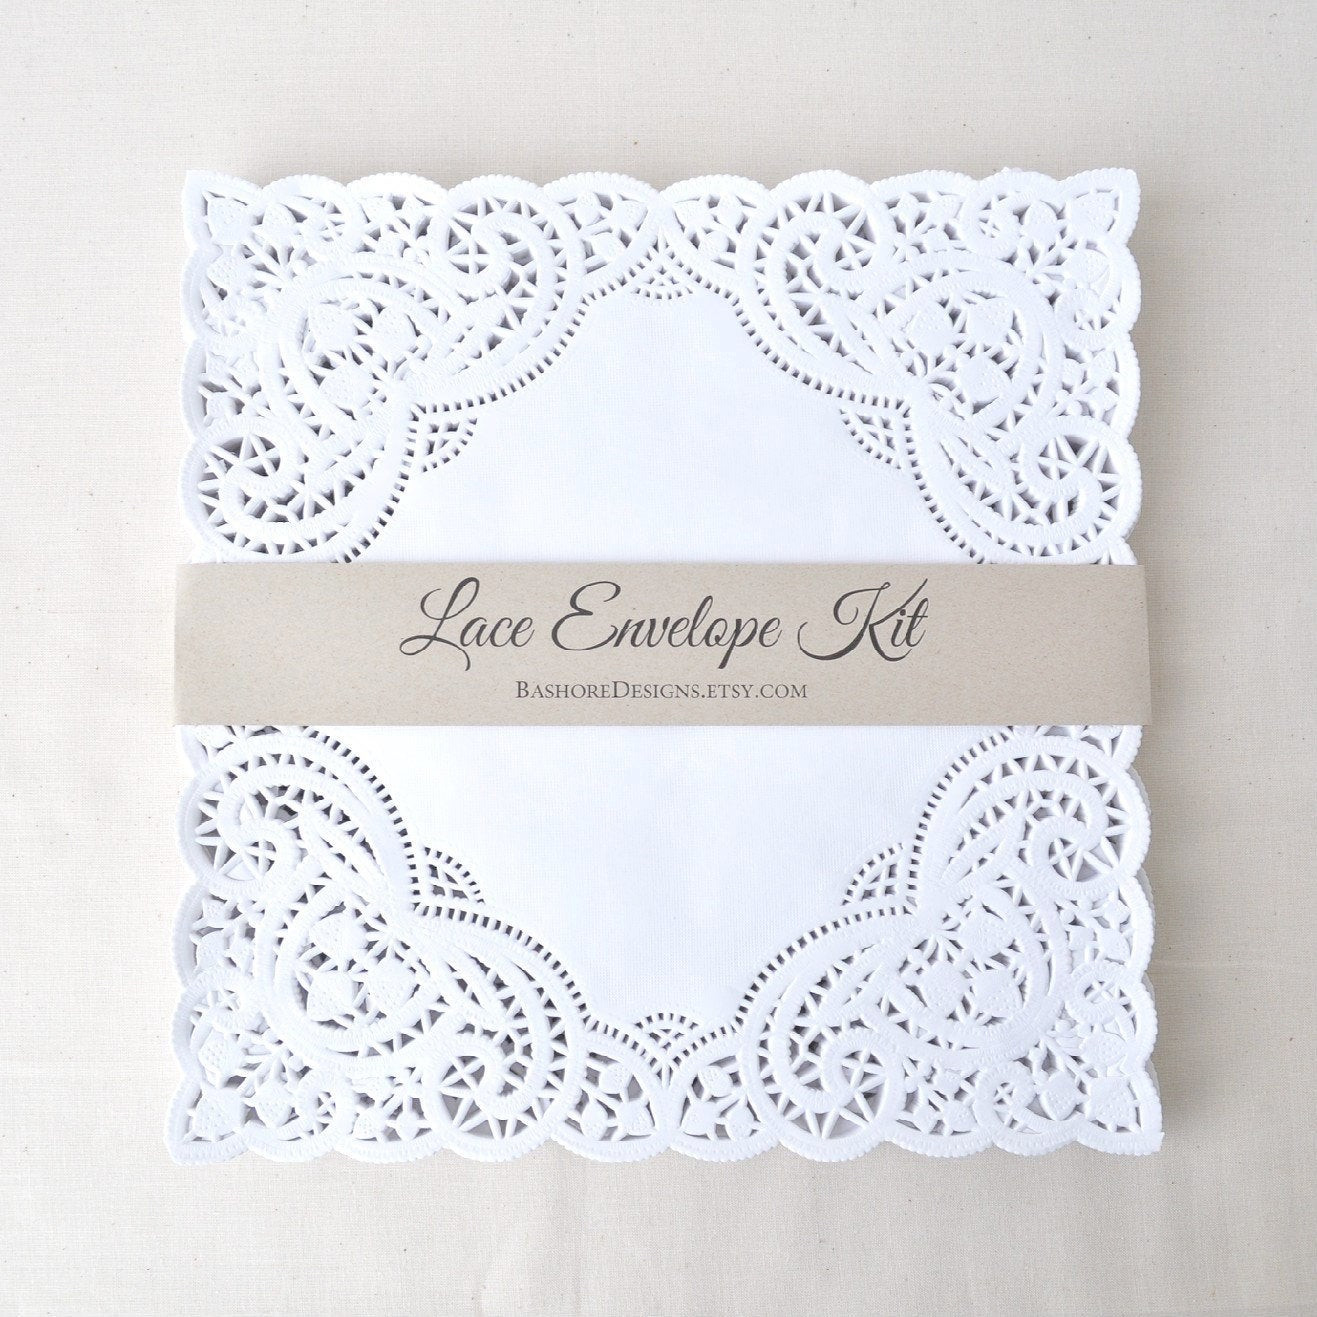 Best ideas about DIY Lace Wedding Invitations . Save or Pin DIY Lace Envelope Kit Wedding Invitation by HarvestPaperCo Now.